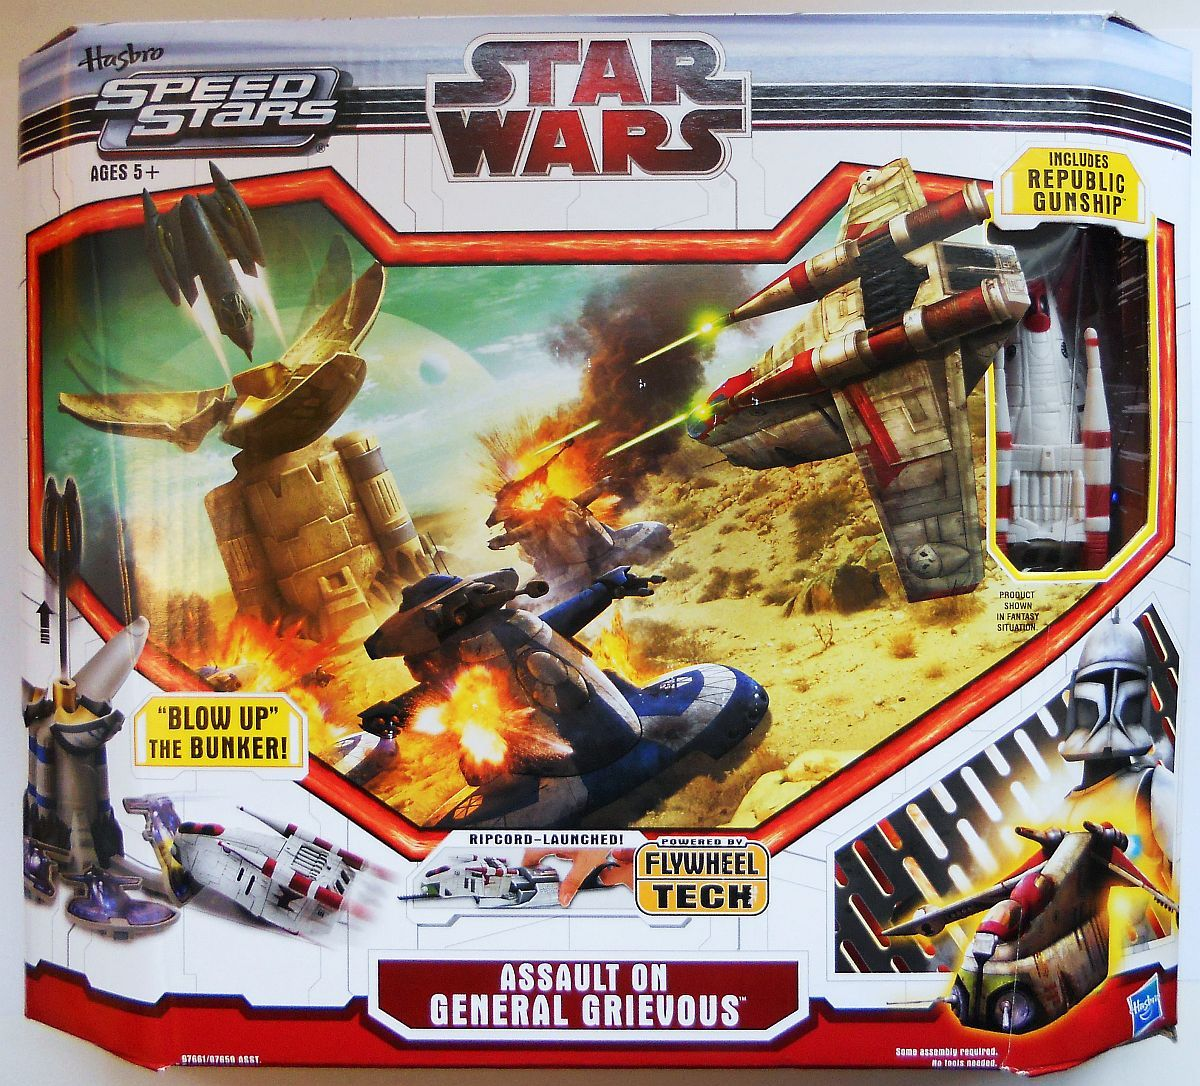 Star Wars Assault On General Grievous Playset Micro Machines Speed Stars